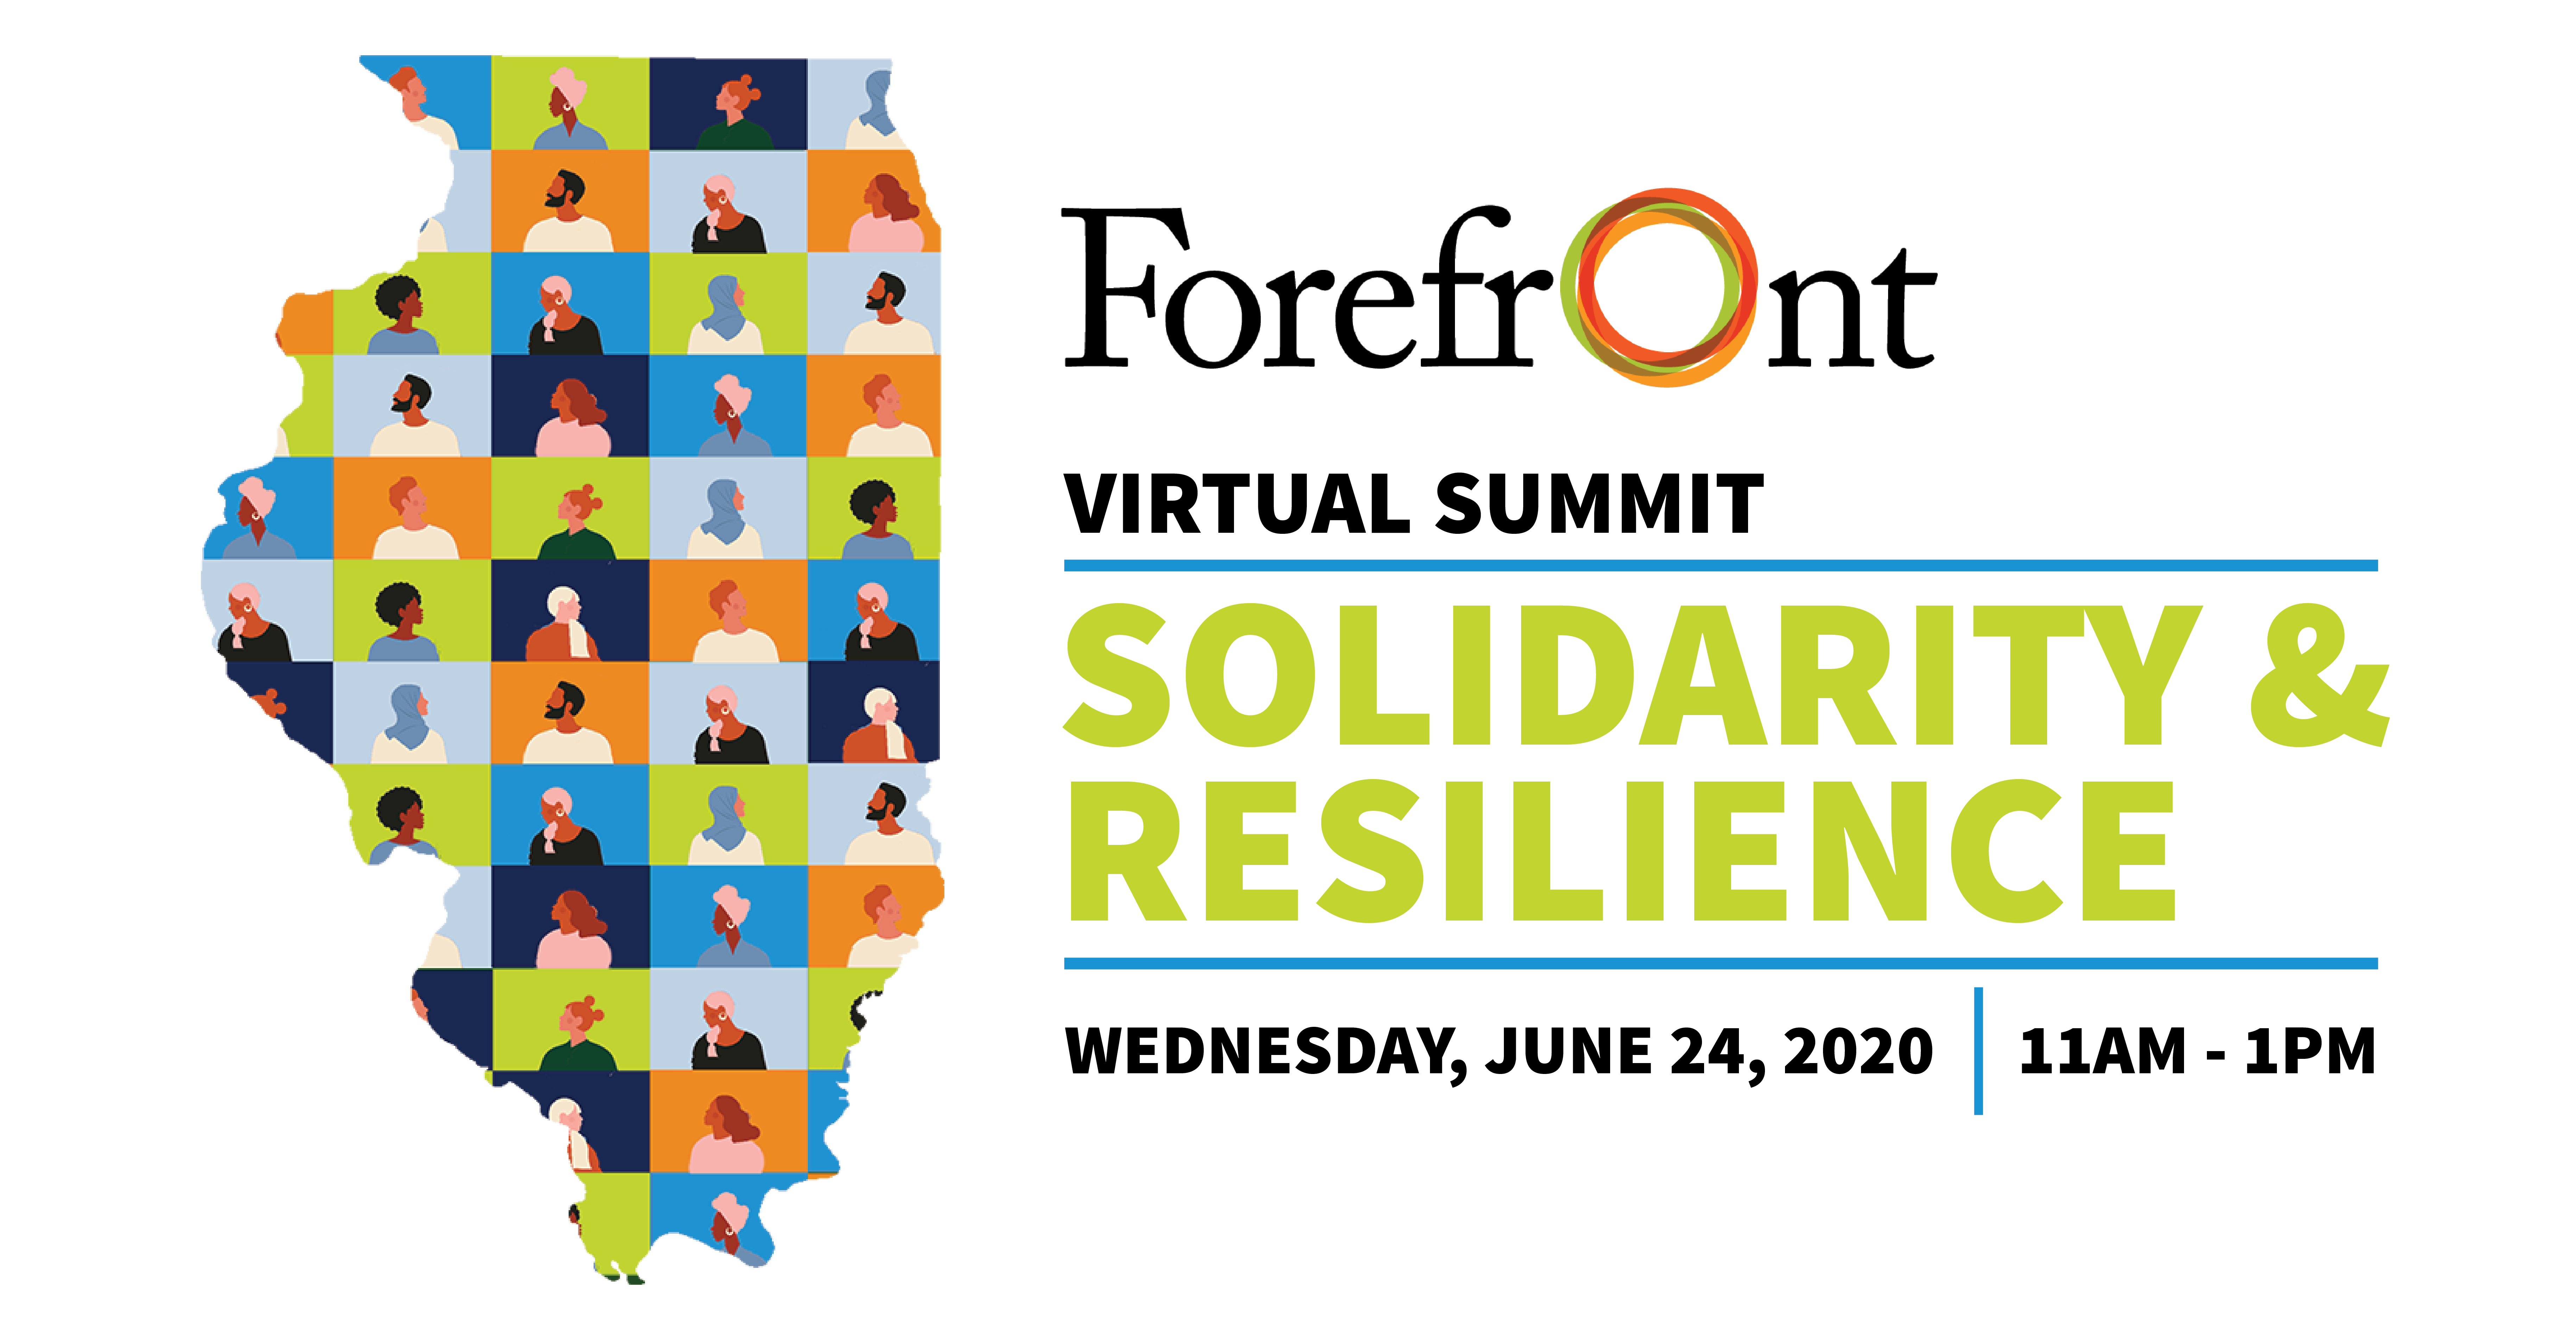 Forefront Virtual Summit, June 24, 11am-1pm